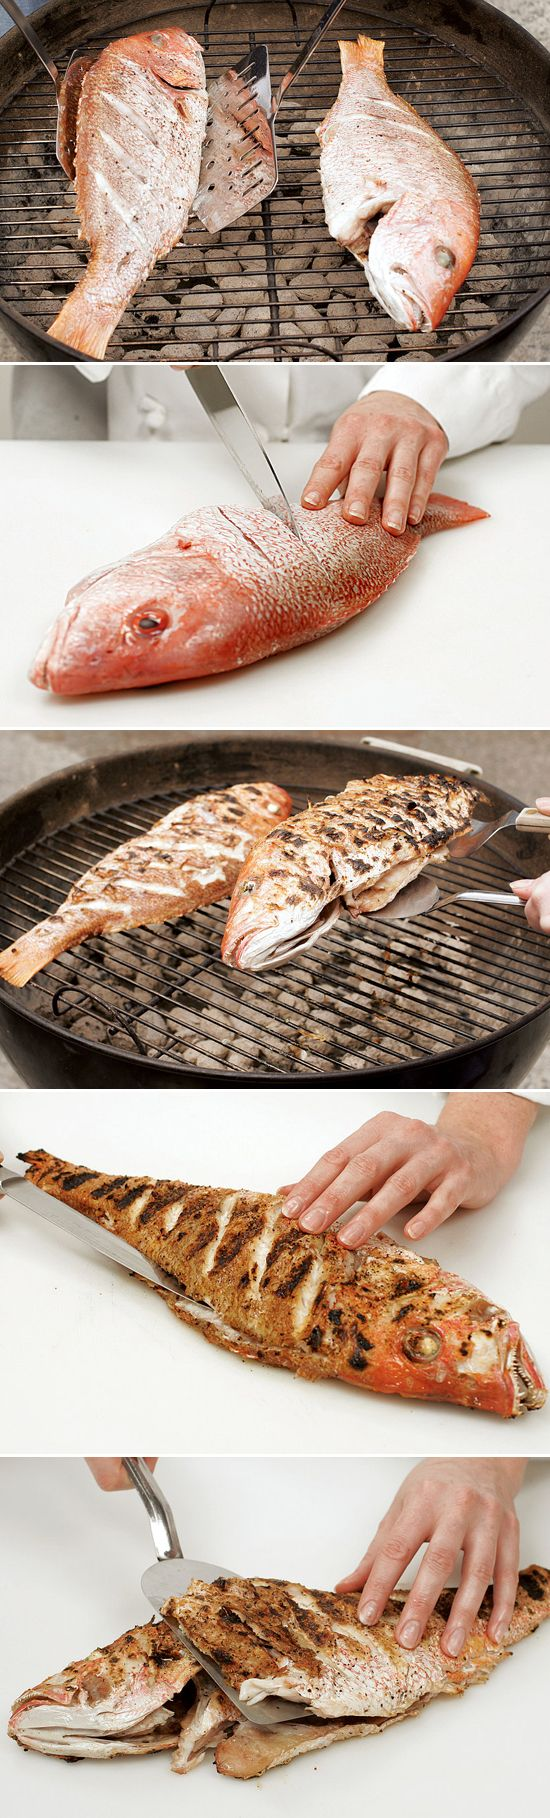 Put an impressive twist on your next outdoor party with grilled whole fish — the dish couldn't be easier to prepare and cook, and its simple presentation is a crowd-stunner. Our recipe and technique works for all types of whole fish, including snapper, bass, trout, mackerel, pompano, and bluefish. Method via @TestKitchen